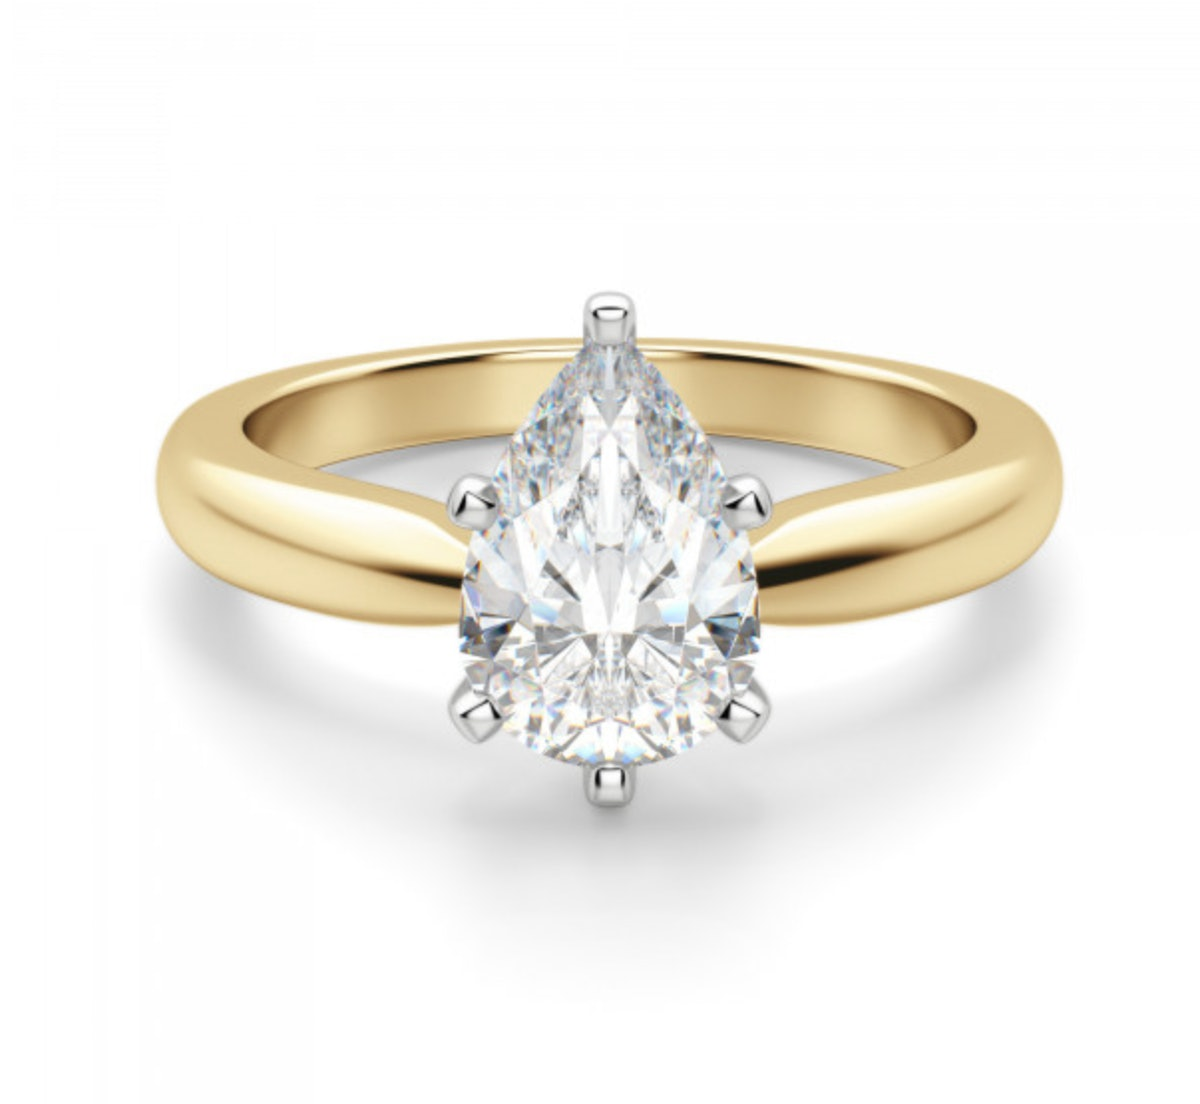 Tiffany-Style Solitaire Pear Cut Engagement Ring